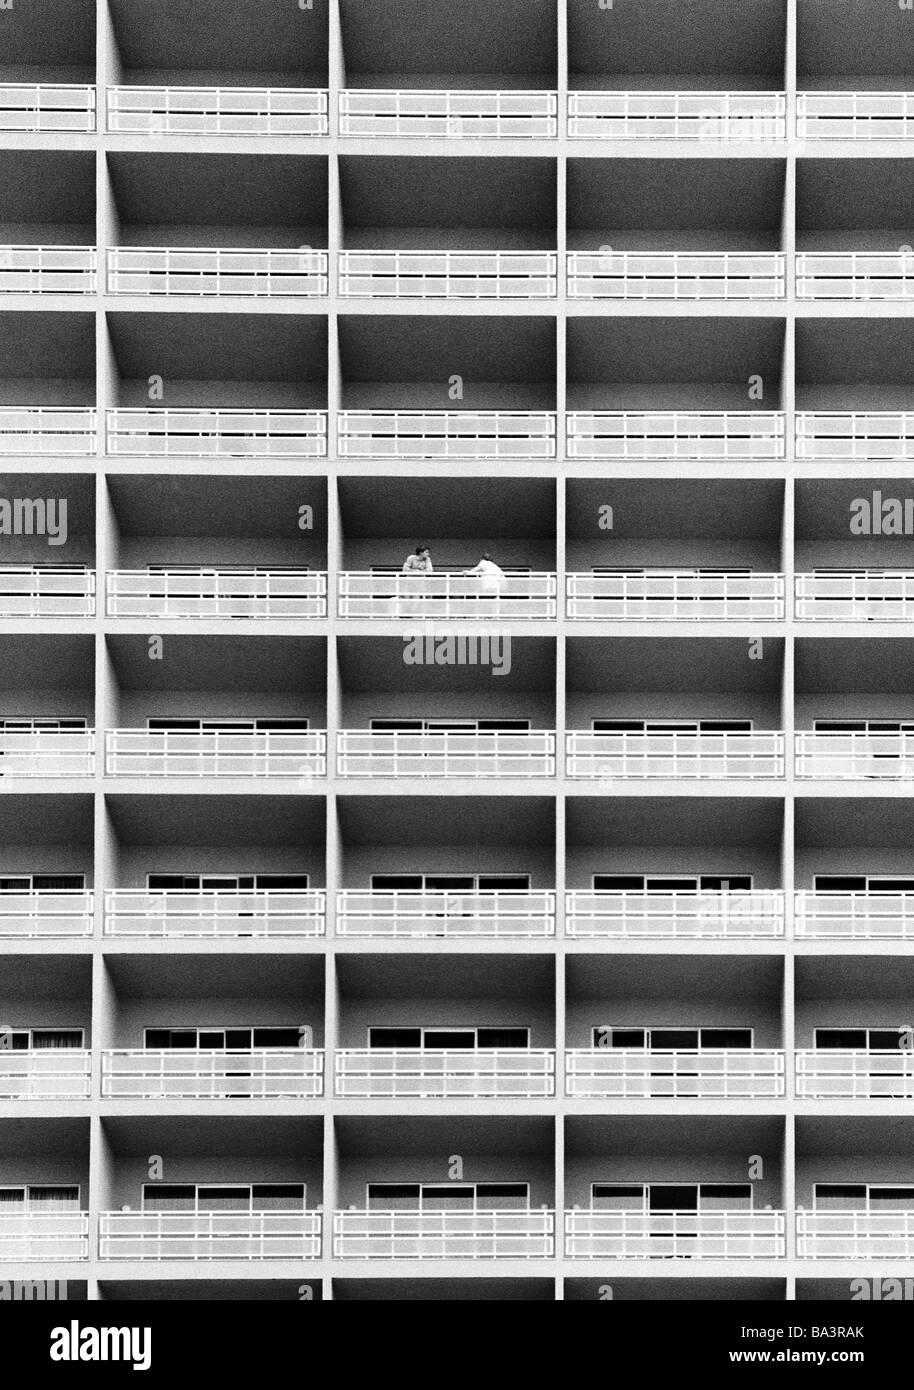 Eighties, black and white photo, holidays, tourism, resort hotel, facade, balconies, Spain, Canary Islands, Canaries, - Stock Image